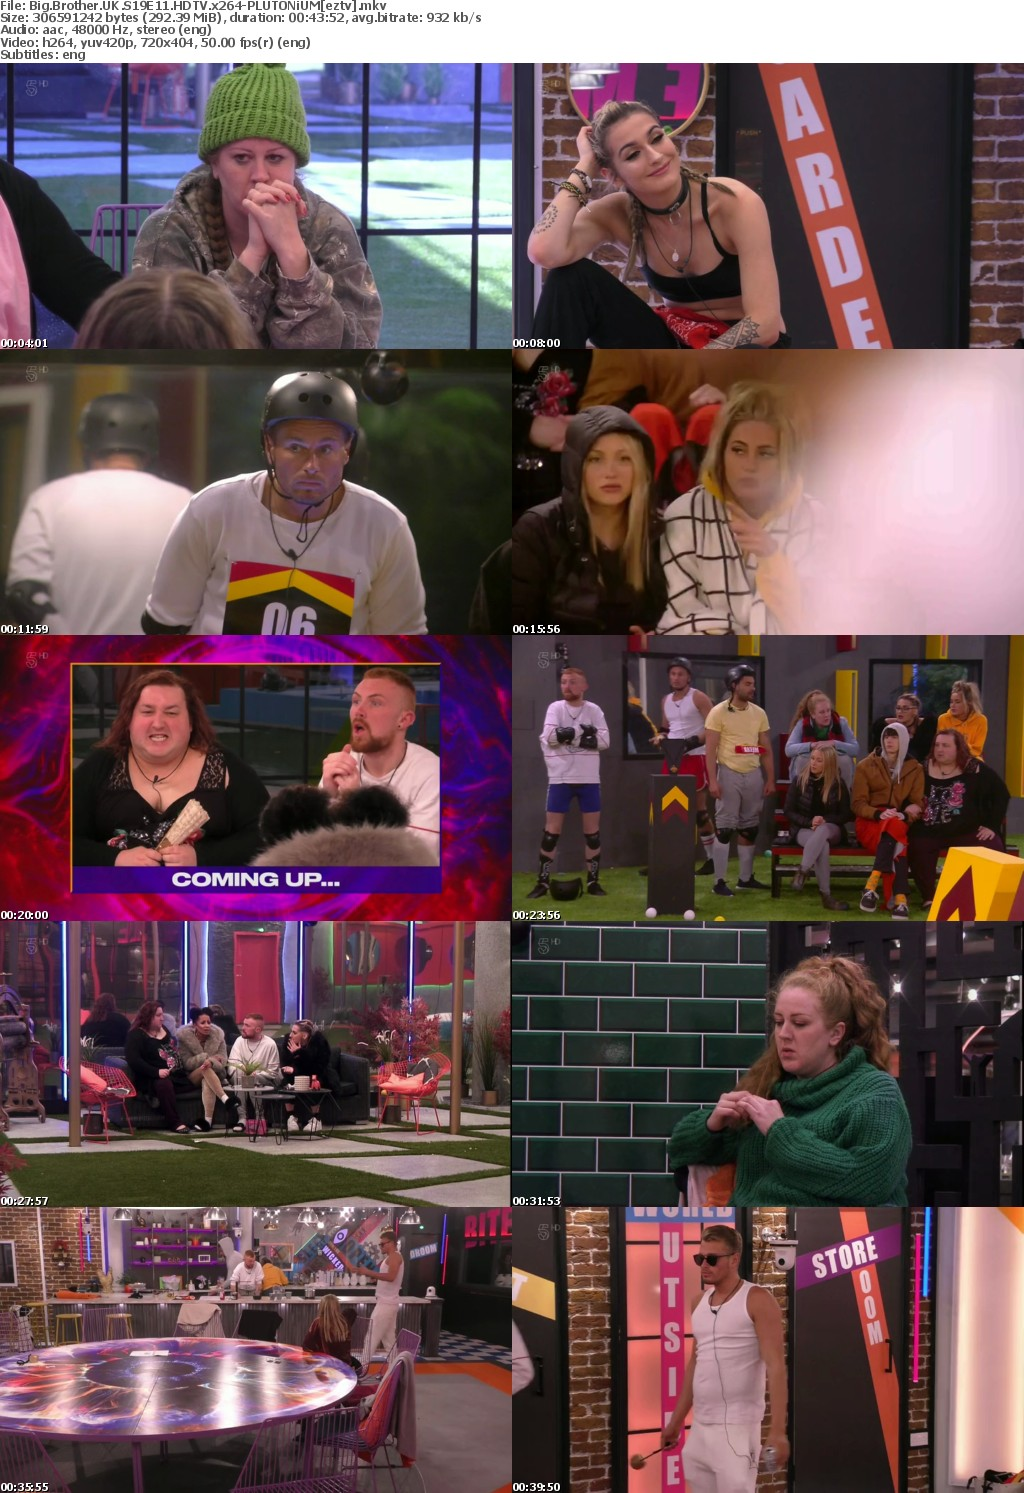 Big Brother UK S19E11 HDTV x264-PLUTONiUM